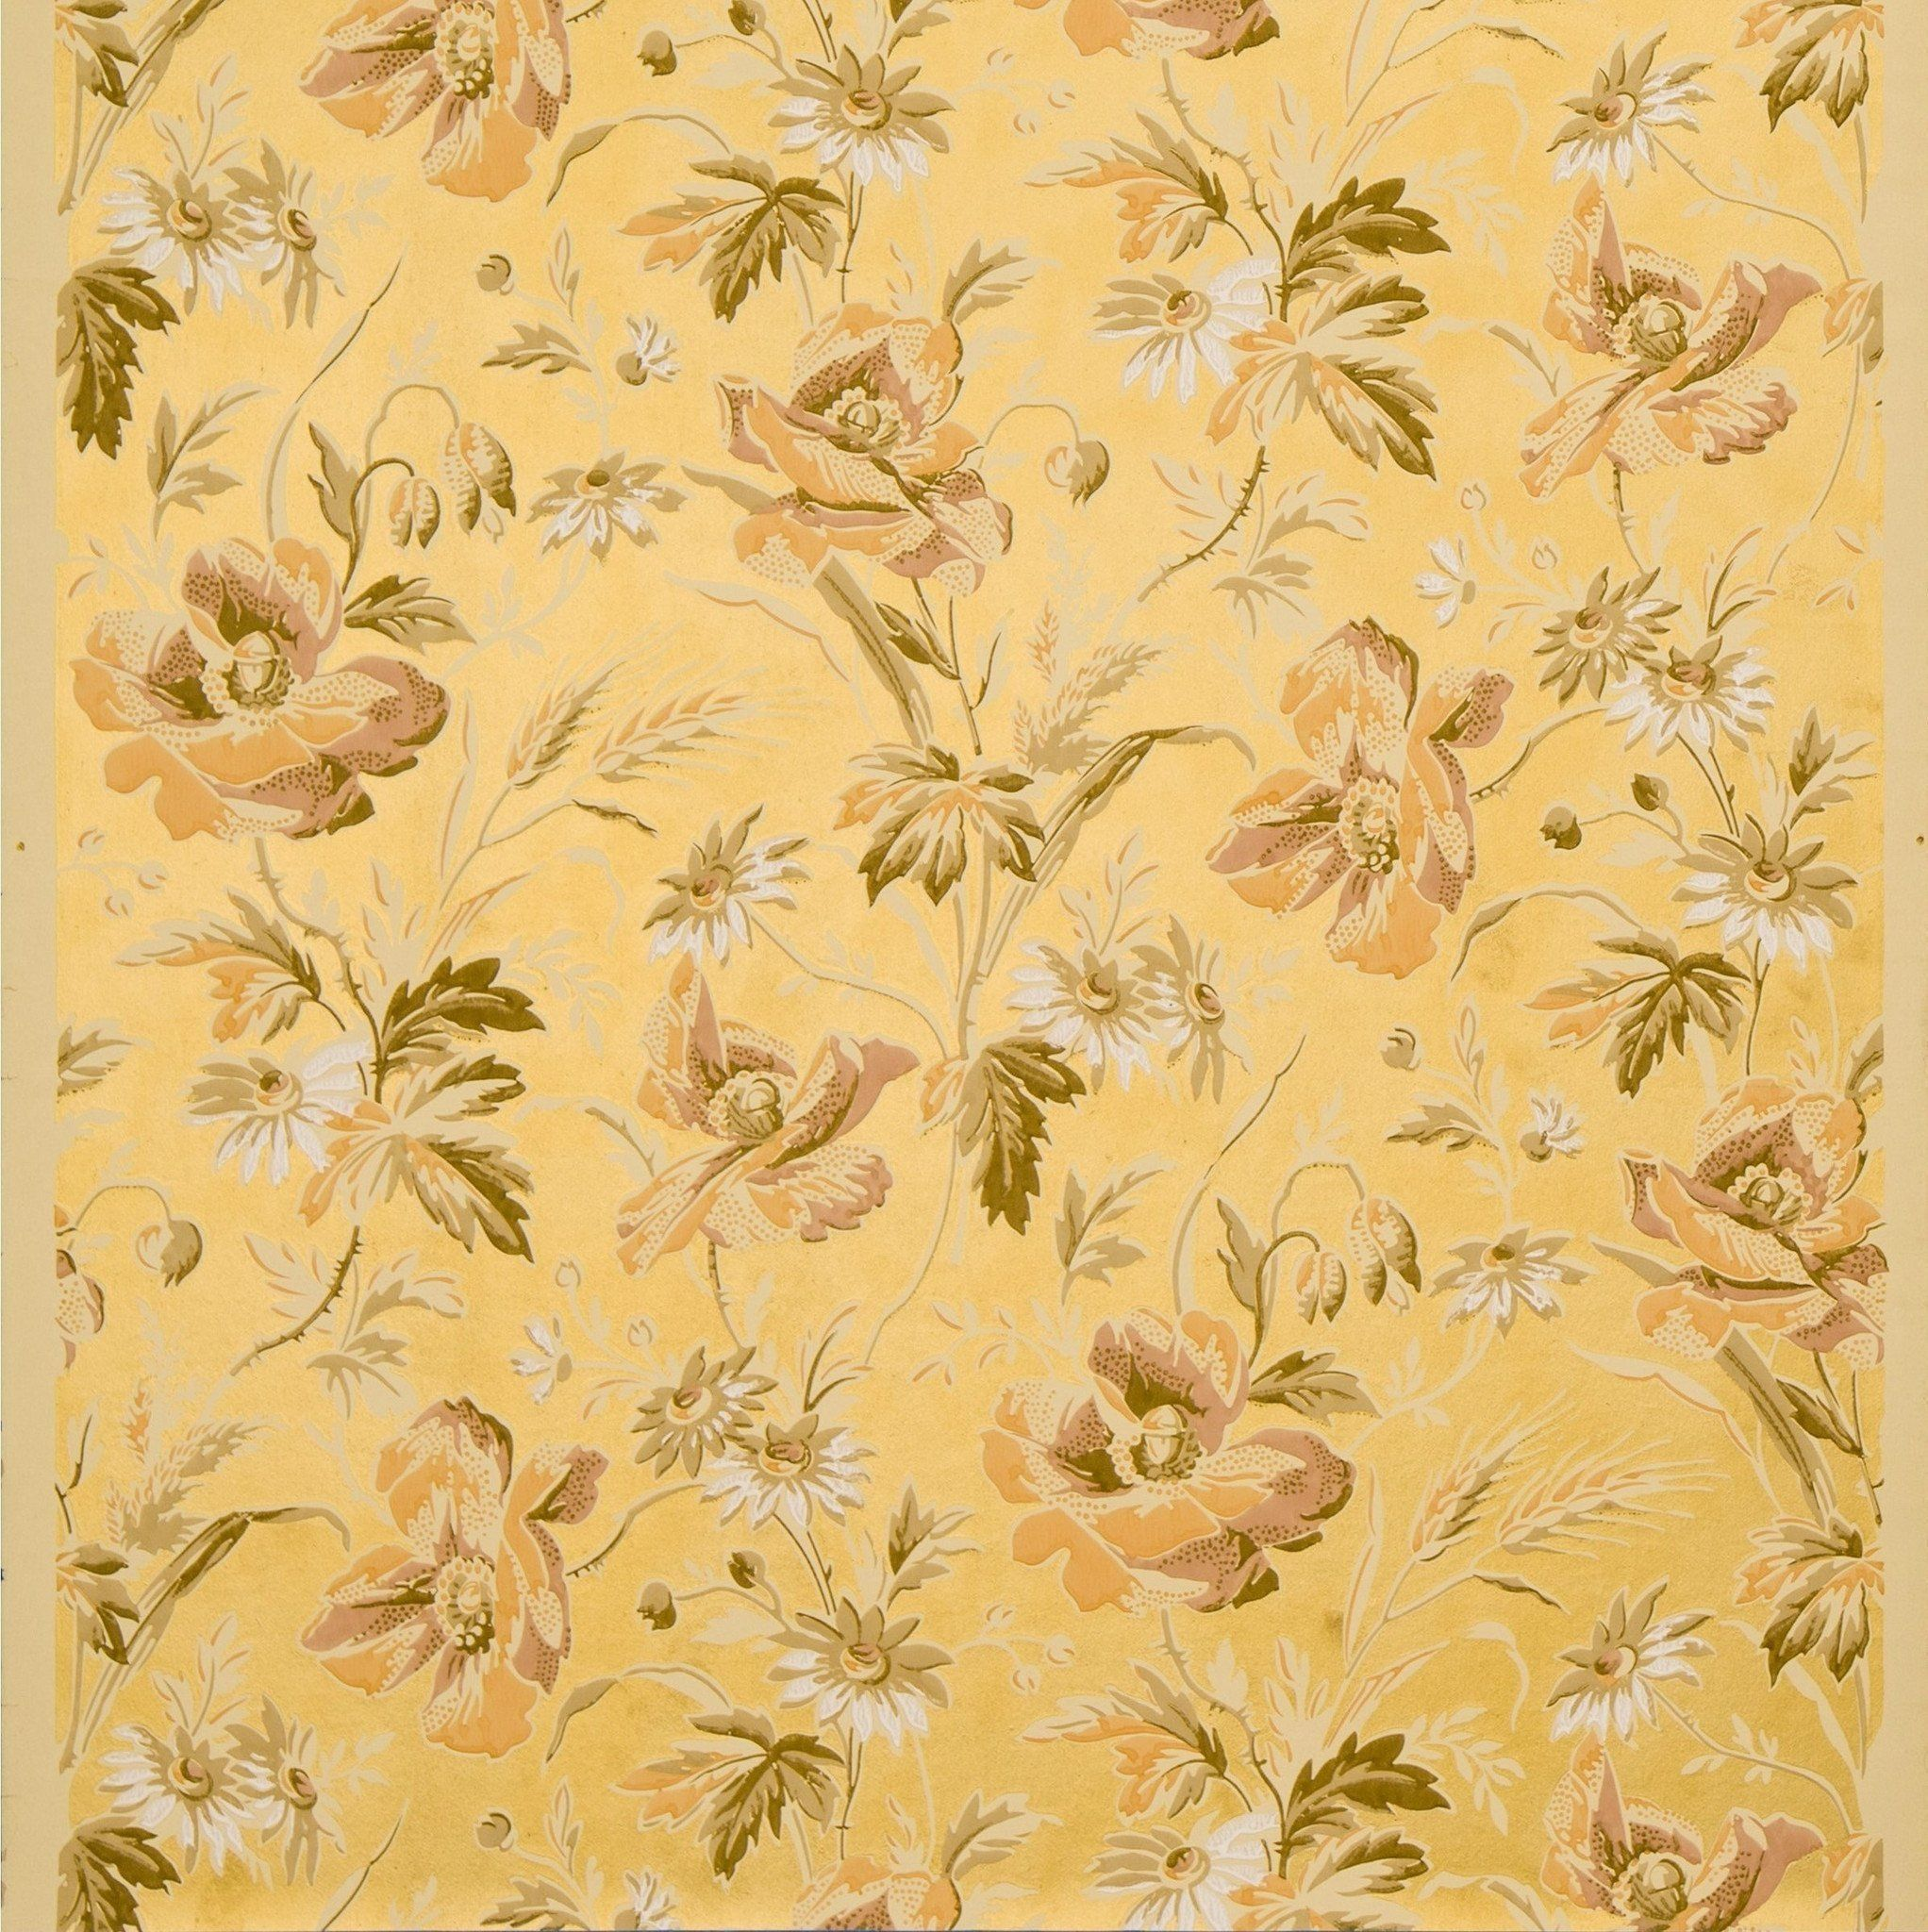 Poppies And Wheat On Gilt Background Antique Wallpaper Remnant Antique Wallpaper Victorian Wallpaper Wallpaper